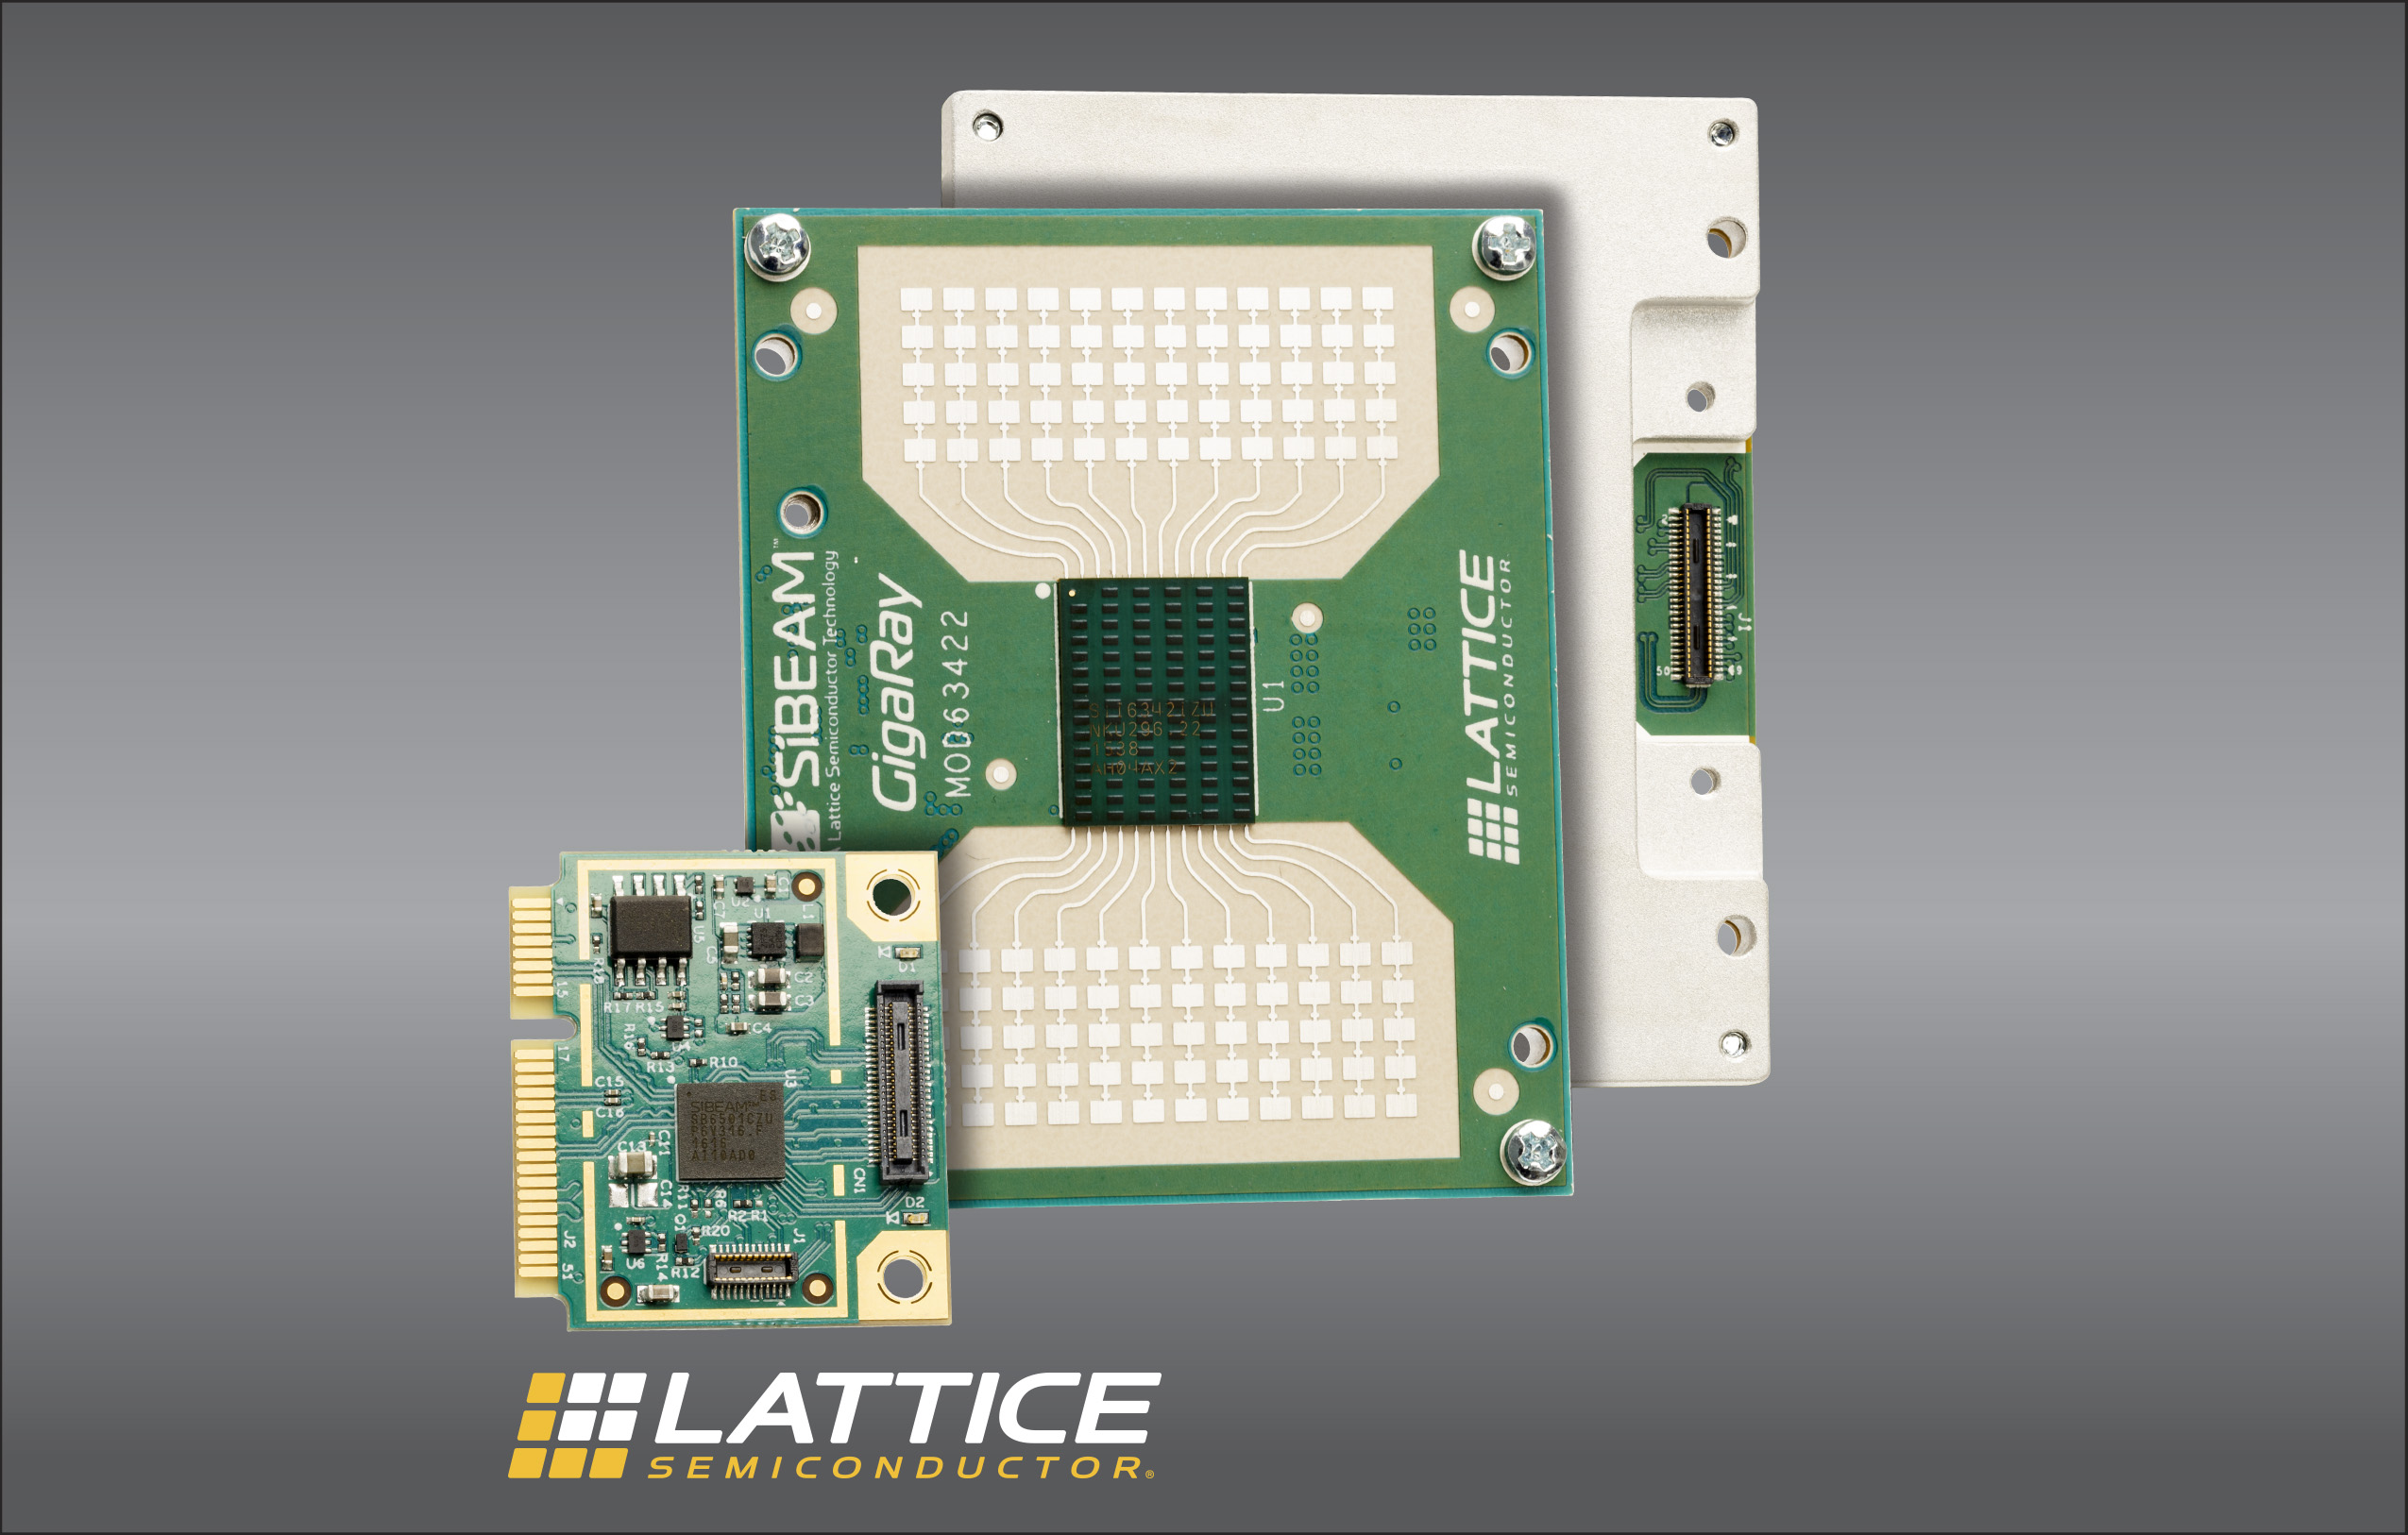 60 GHz Modules Intended for Gigabit-Class Wireless Infrastructure Applications